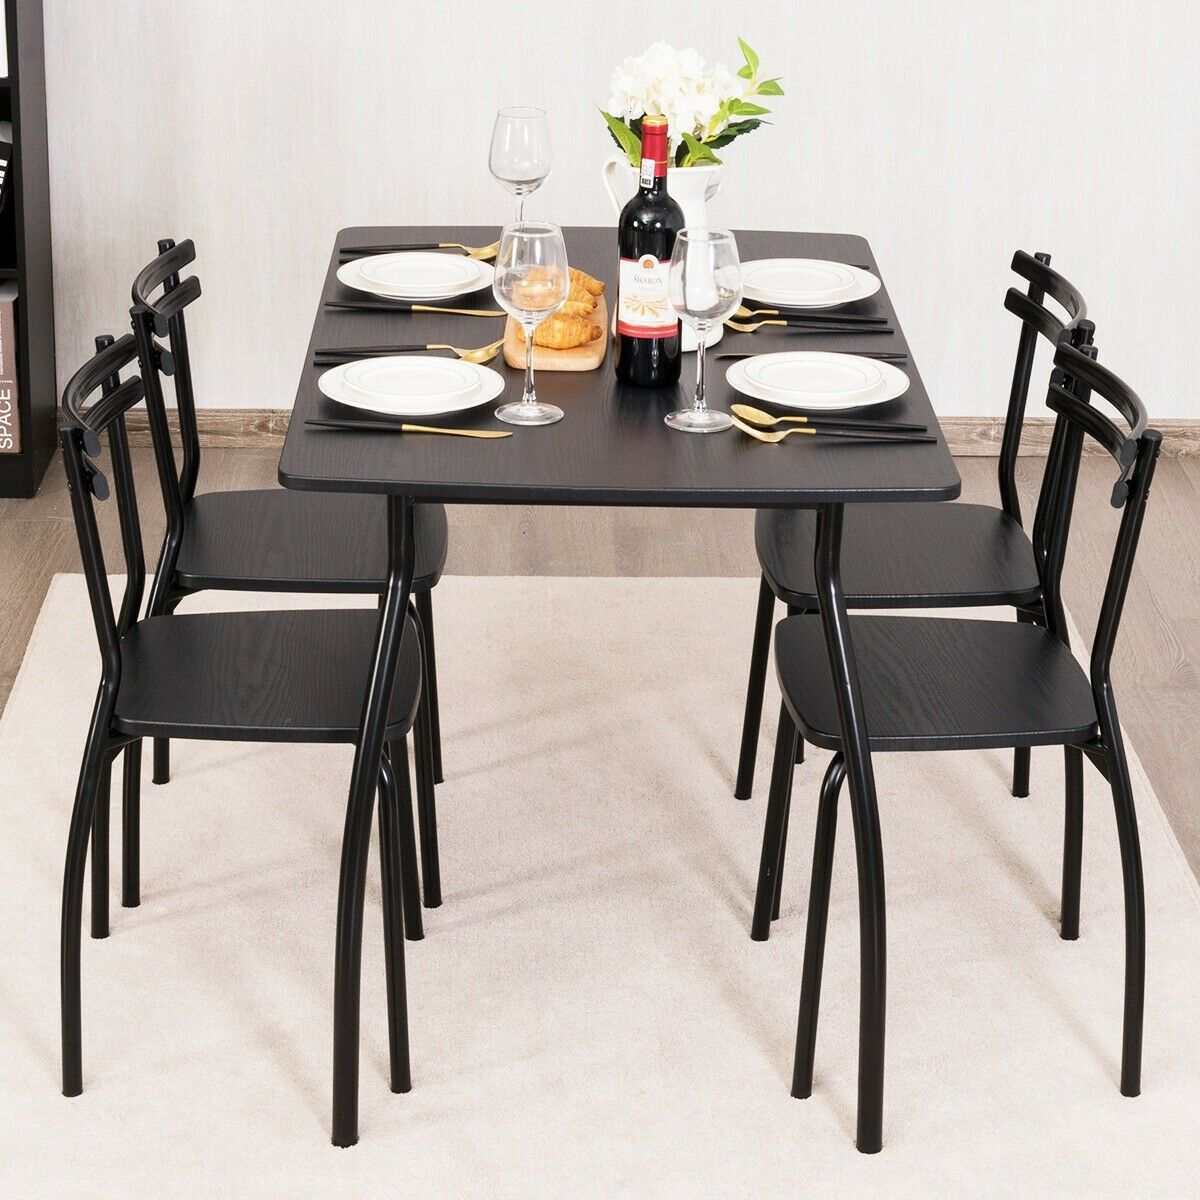 5 Pcs Dining Table Set With 4 Chairs Dinner Table Chairs Dining Table Setting Black Kitchen Furniture